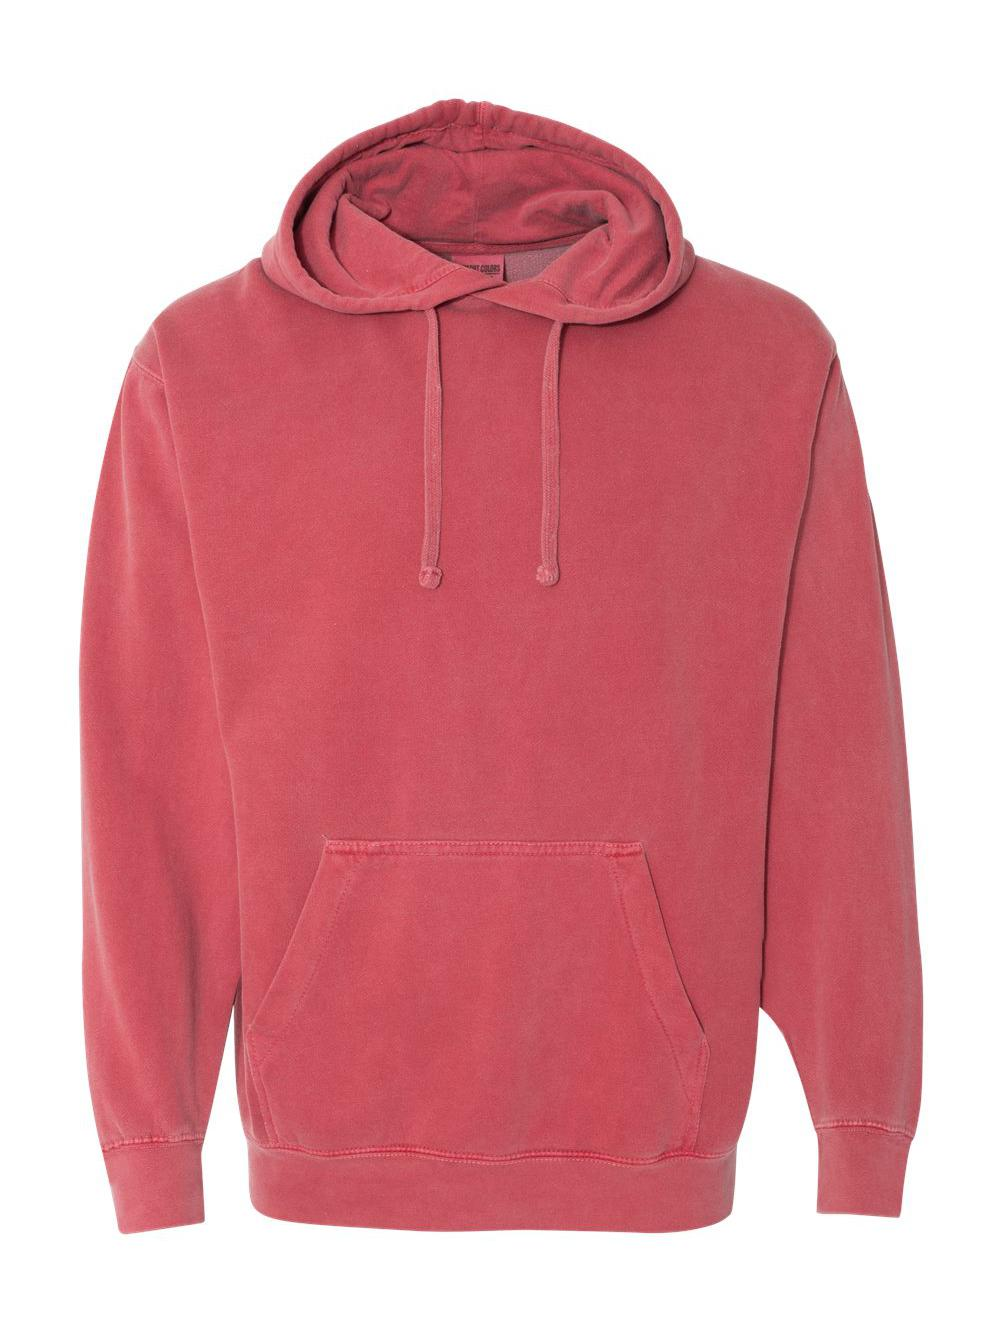 Comfort-Colors-Garment-Dyed-Hooded-Pullover-Sweatshirt-1567 thumbnail 9